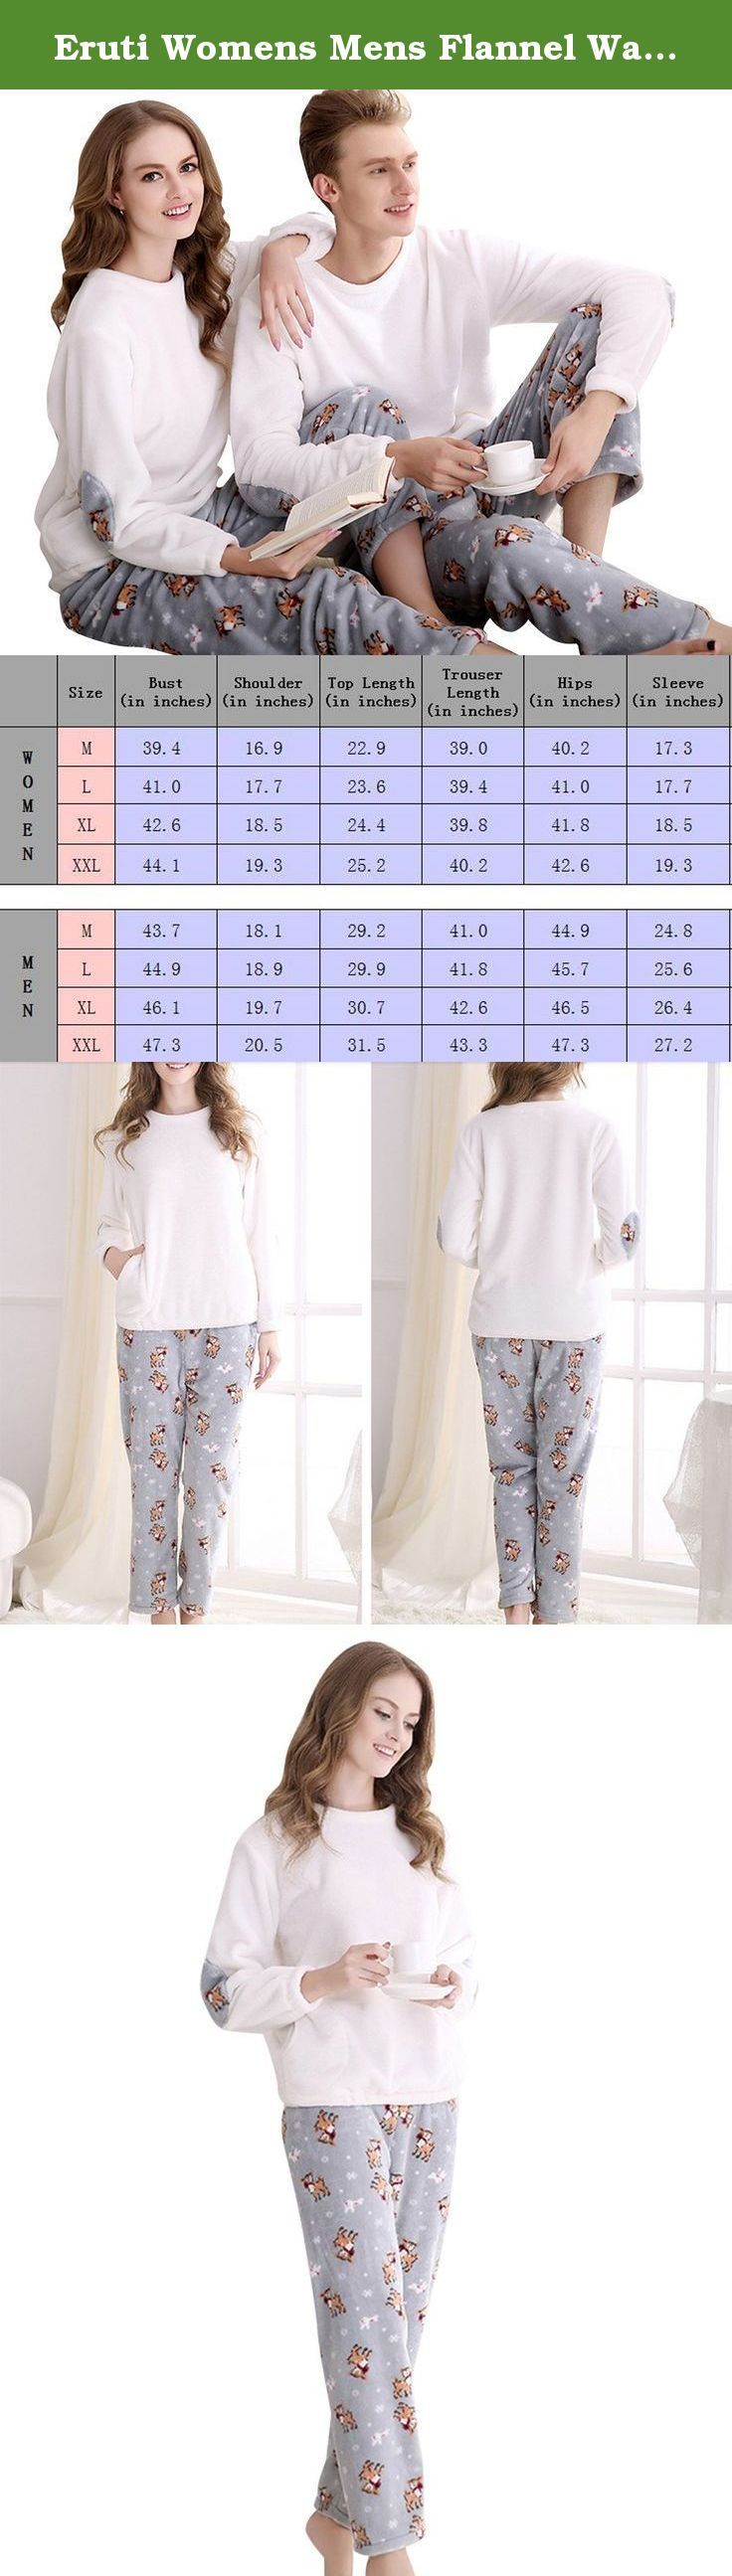 Eruti Womens Mens Flannel Warm Cute Animal Matching Couples Pajama Set White Medium. Perfect for sleeping and Lounging at home, soft and lightweight, the size chart in images is our standard size, please check them.